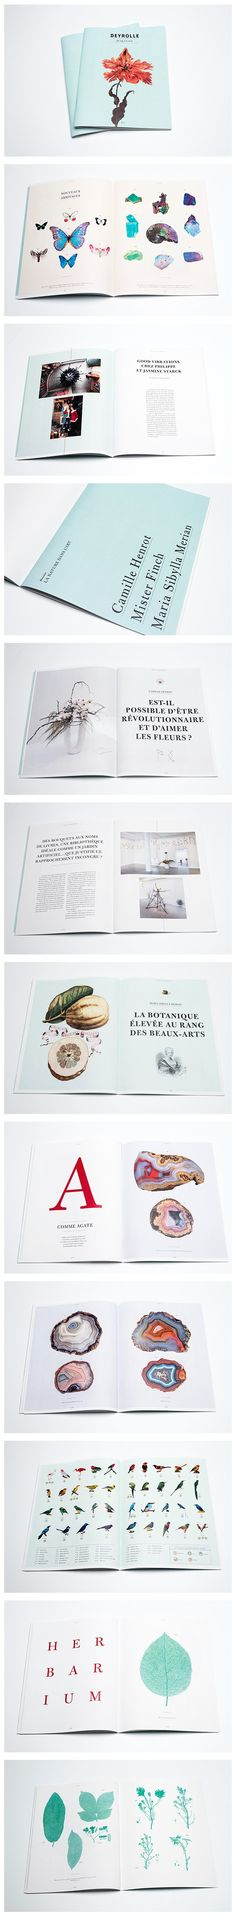 Layout design / Deyrolle magazine on Behance Layout Print, Book Design Layout, Book Layouts, Typography Layout, Graphic Design Typography, Graphic Design Illustration, Design Editorial, Editorial Layout, Cv Inspiration